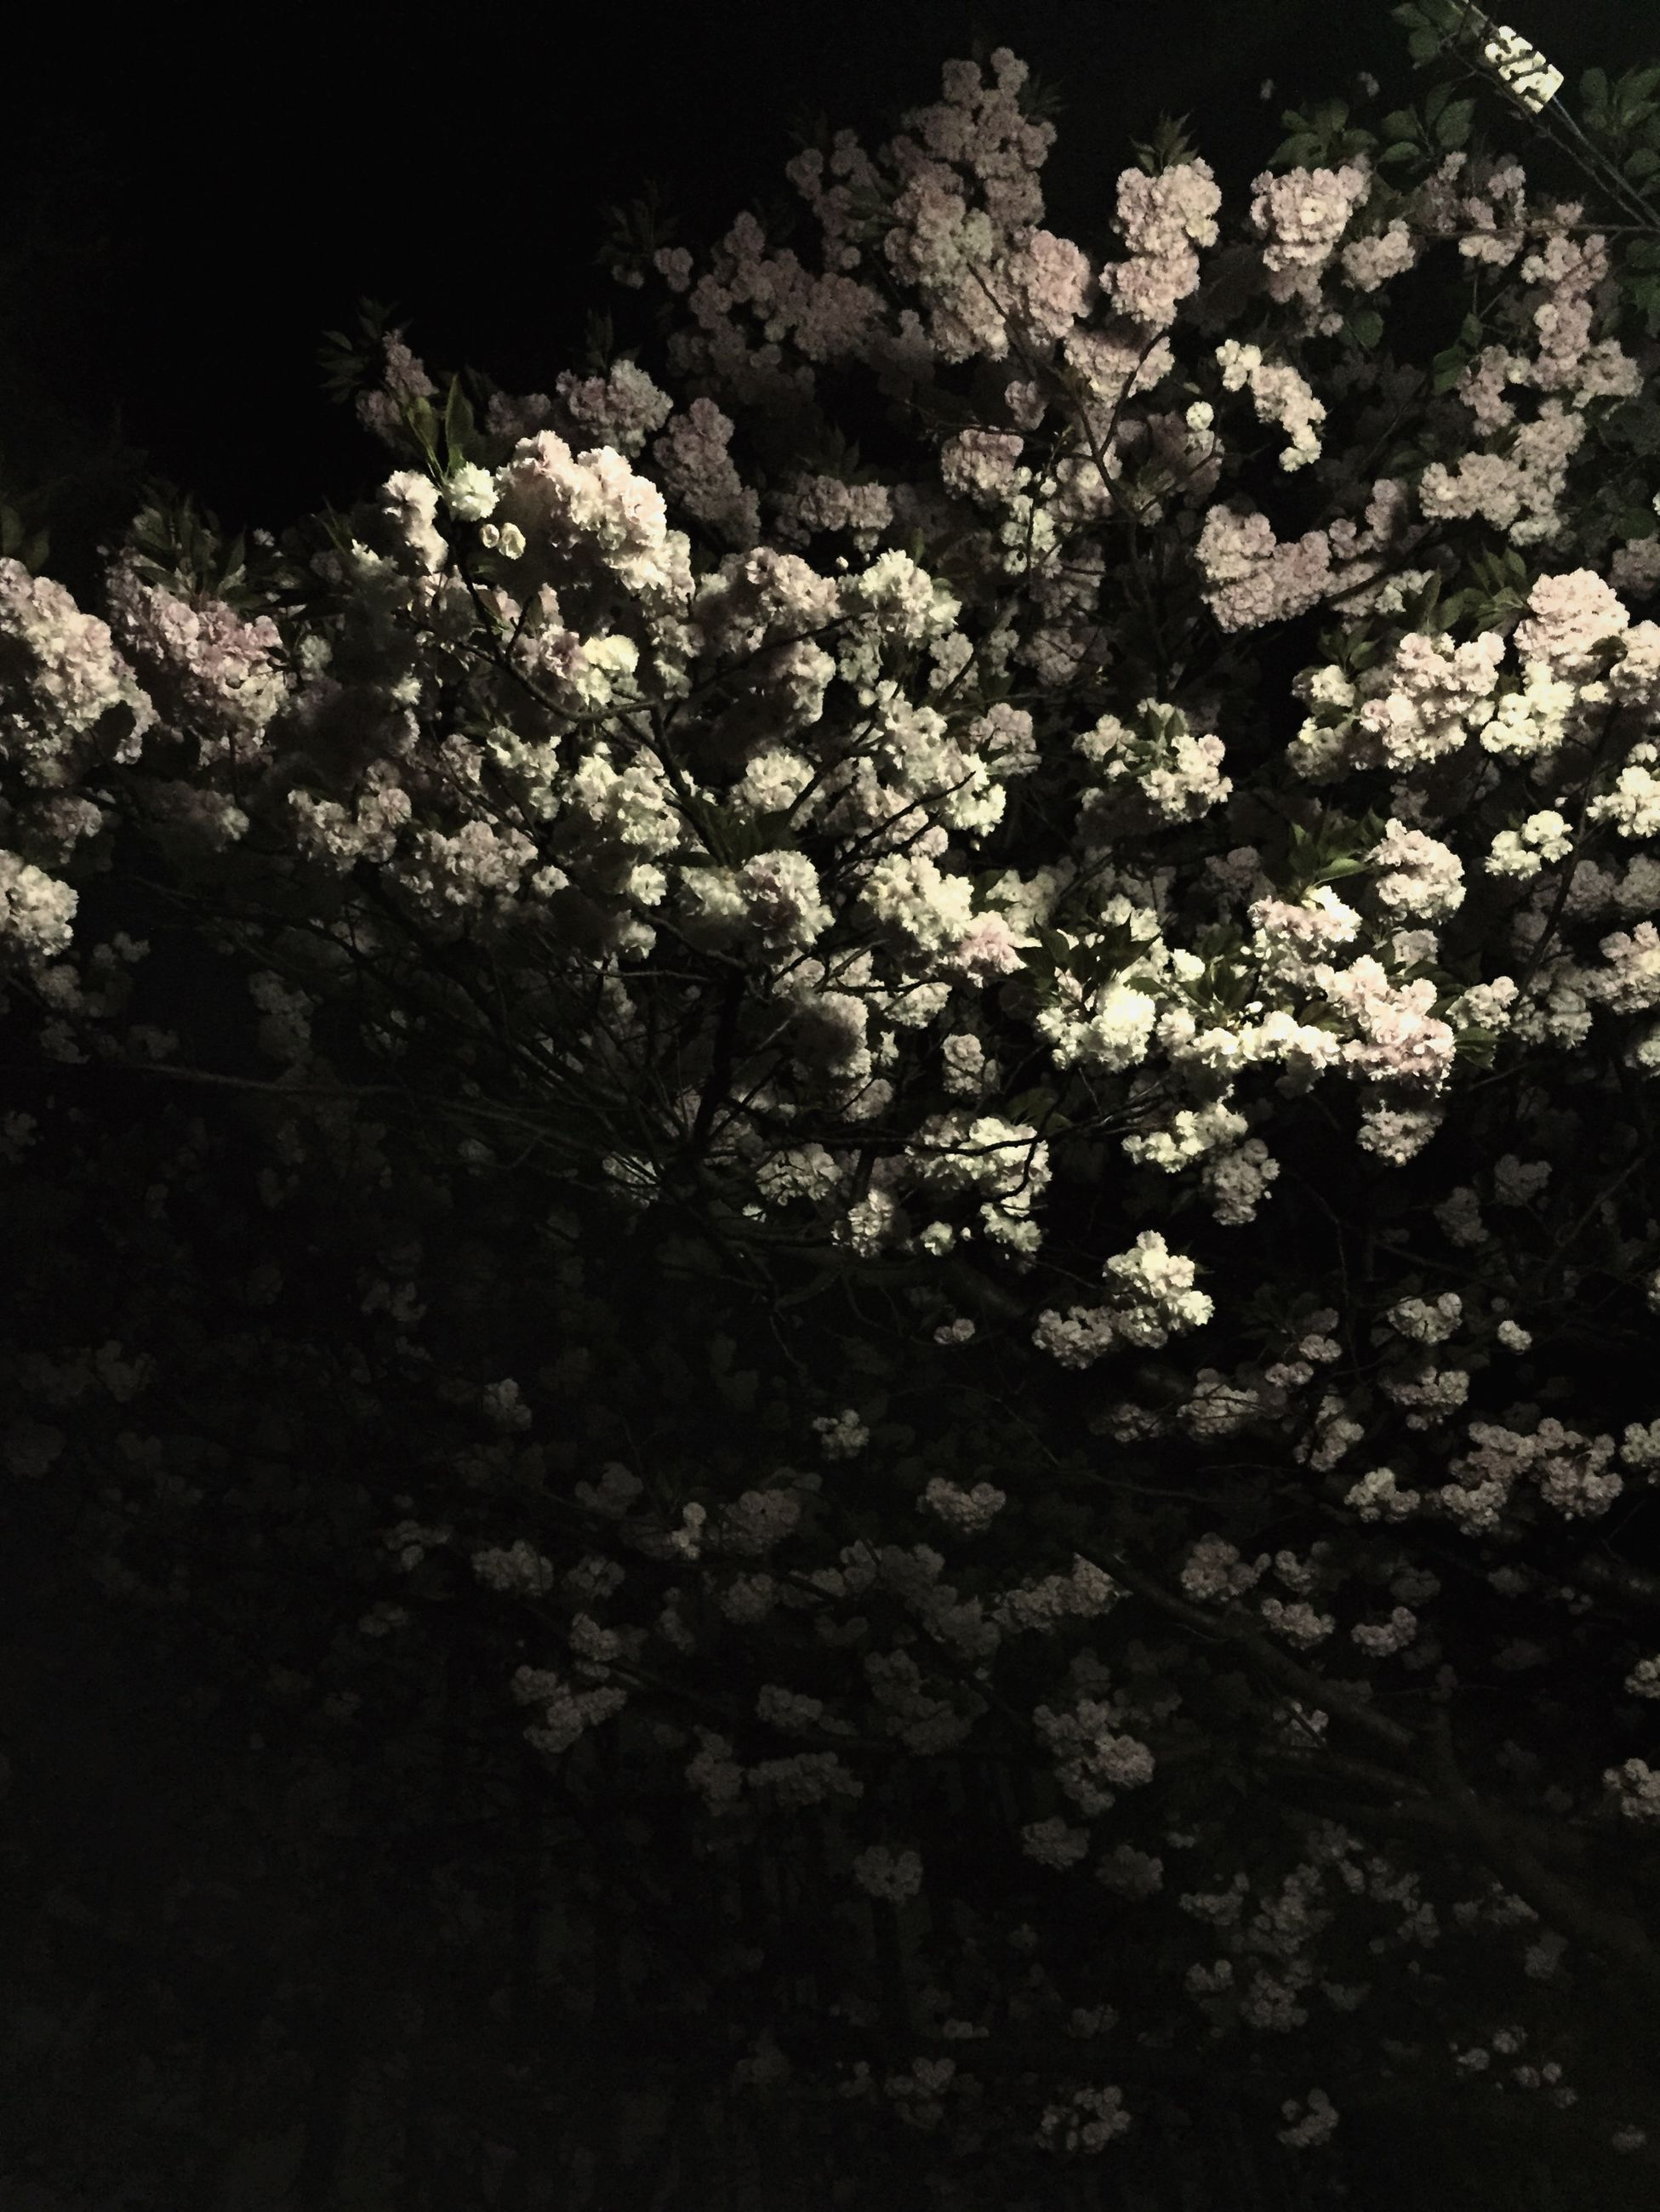 flower, growth, freshness, beauty in nature, fragility, nature, tree, white color, blossom, branch, petal, blooming, in bloom, night, plant, low angle view, springtime, outdoors, botany, no people